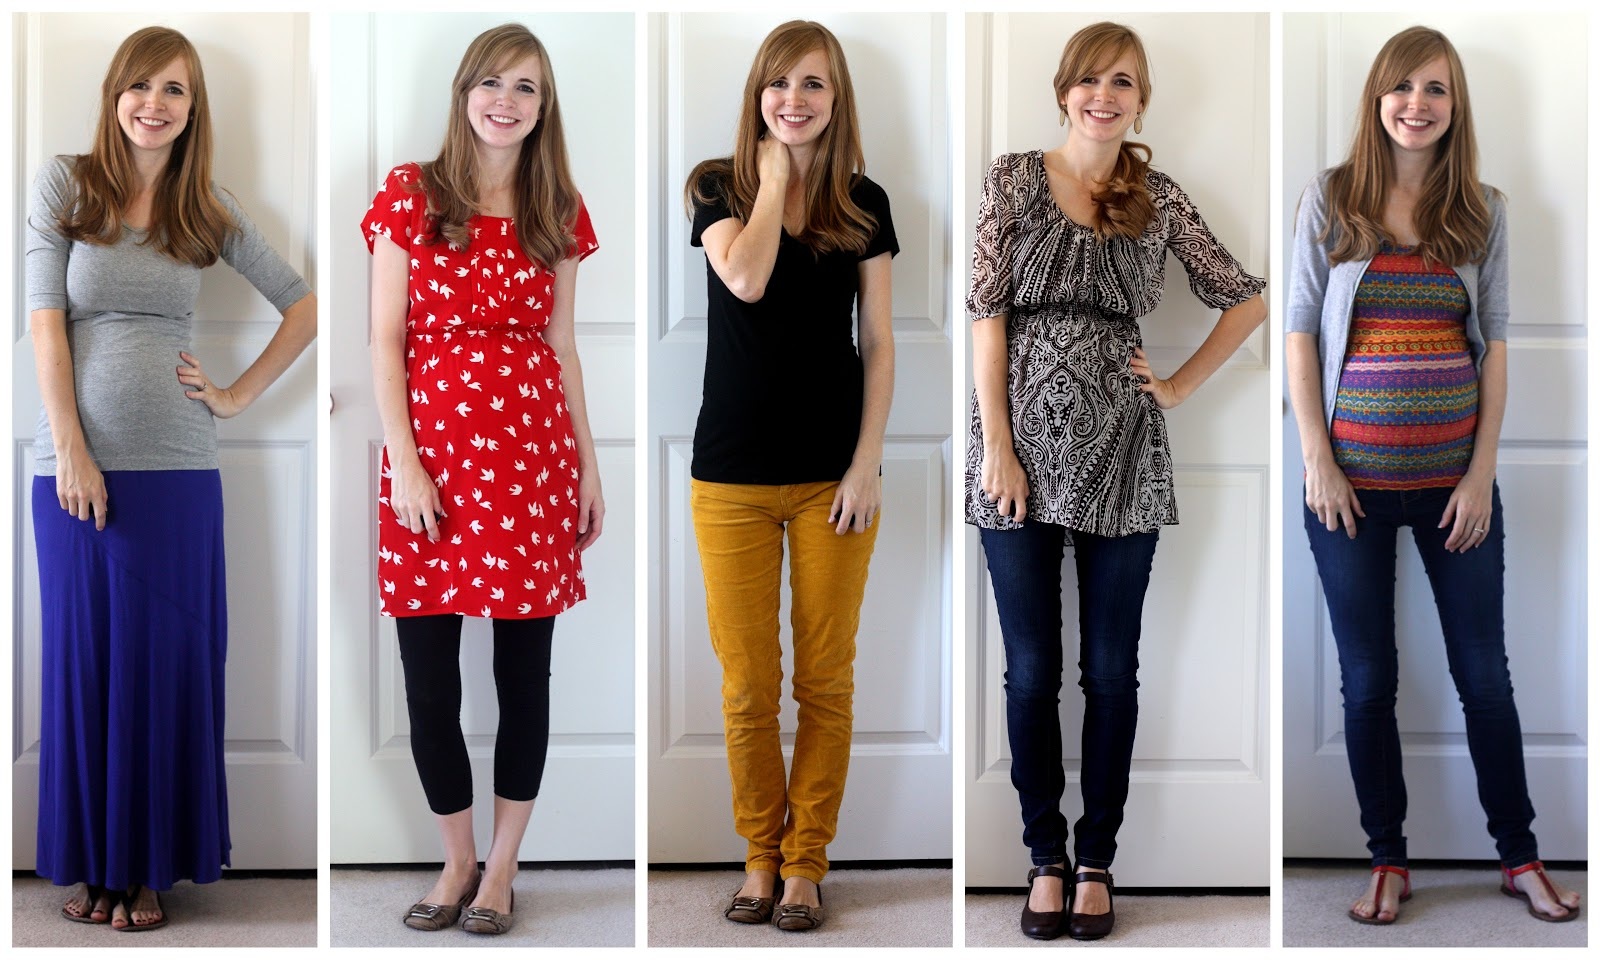 3265c15c1c7a4 Shirt: Target, Pants: Target, Shoes: Fossil Shirt: Borrowed from Landen,  Jeans: Old Navy Maternity, Shoes: Target